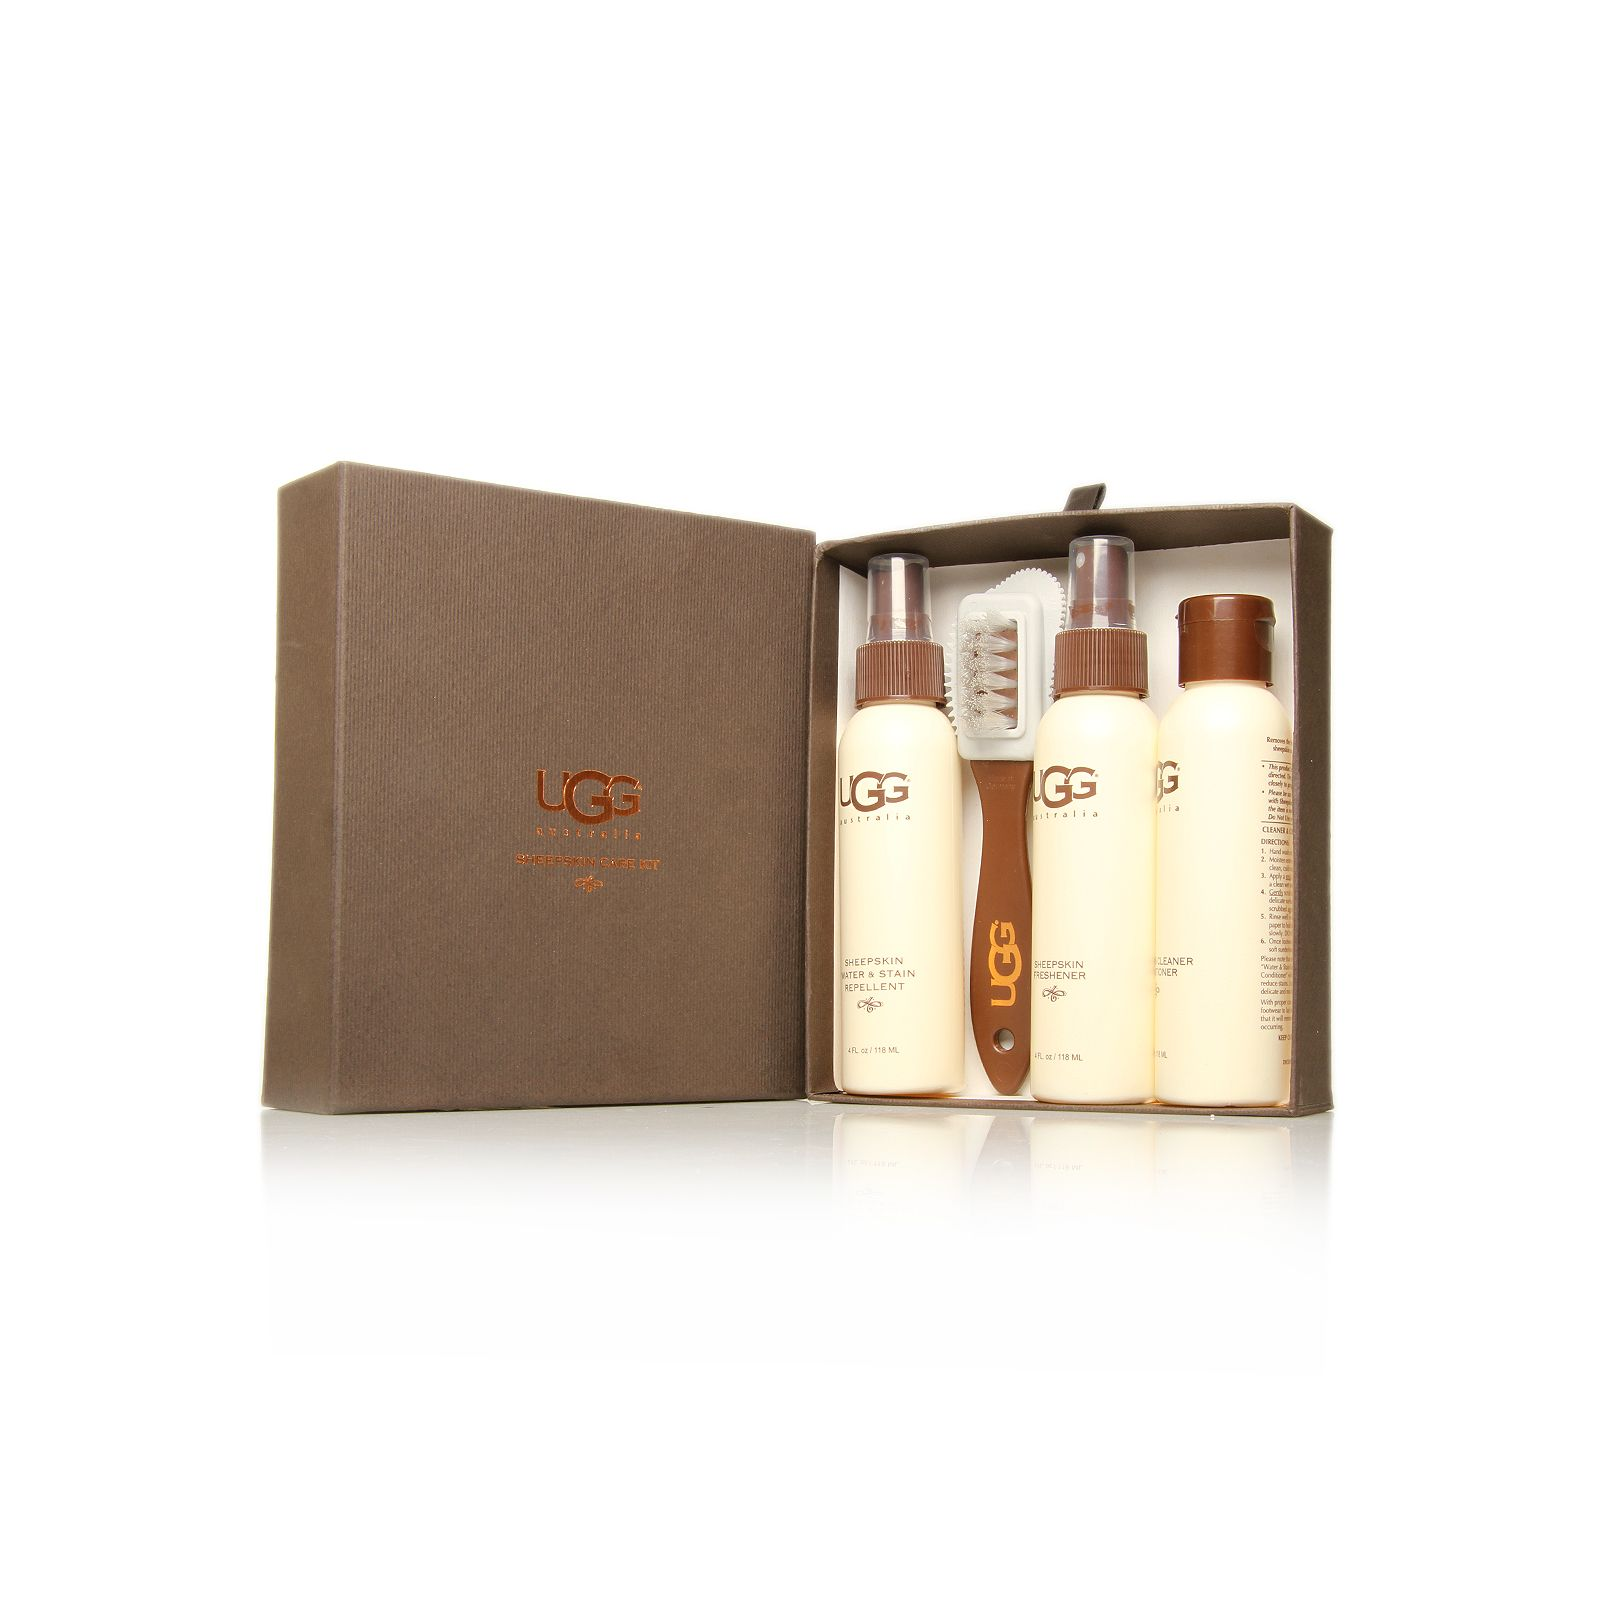 Ugg after care kit